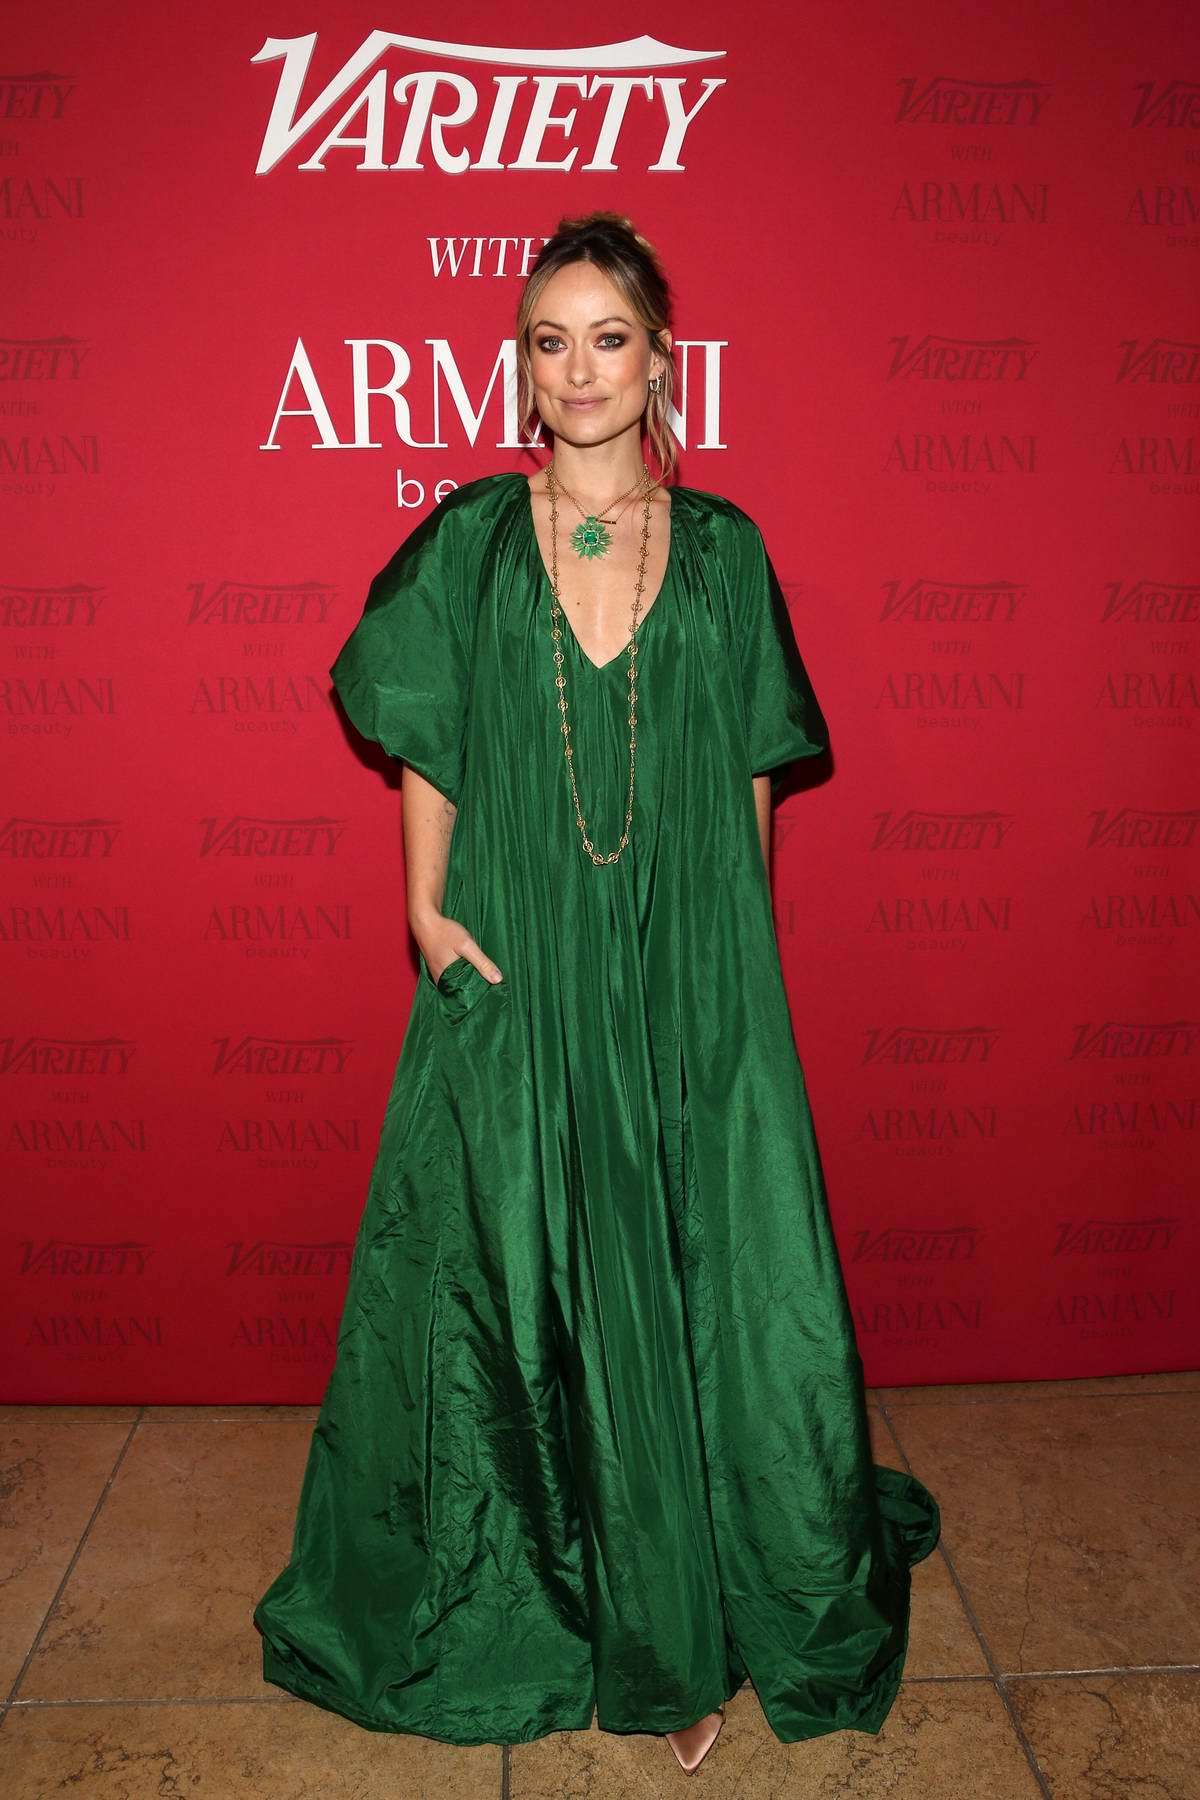 Olivia Wilde attends the Variety x Armani Makeup Artistry Dinner at Sunset Tower in Los Angeles